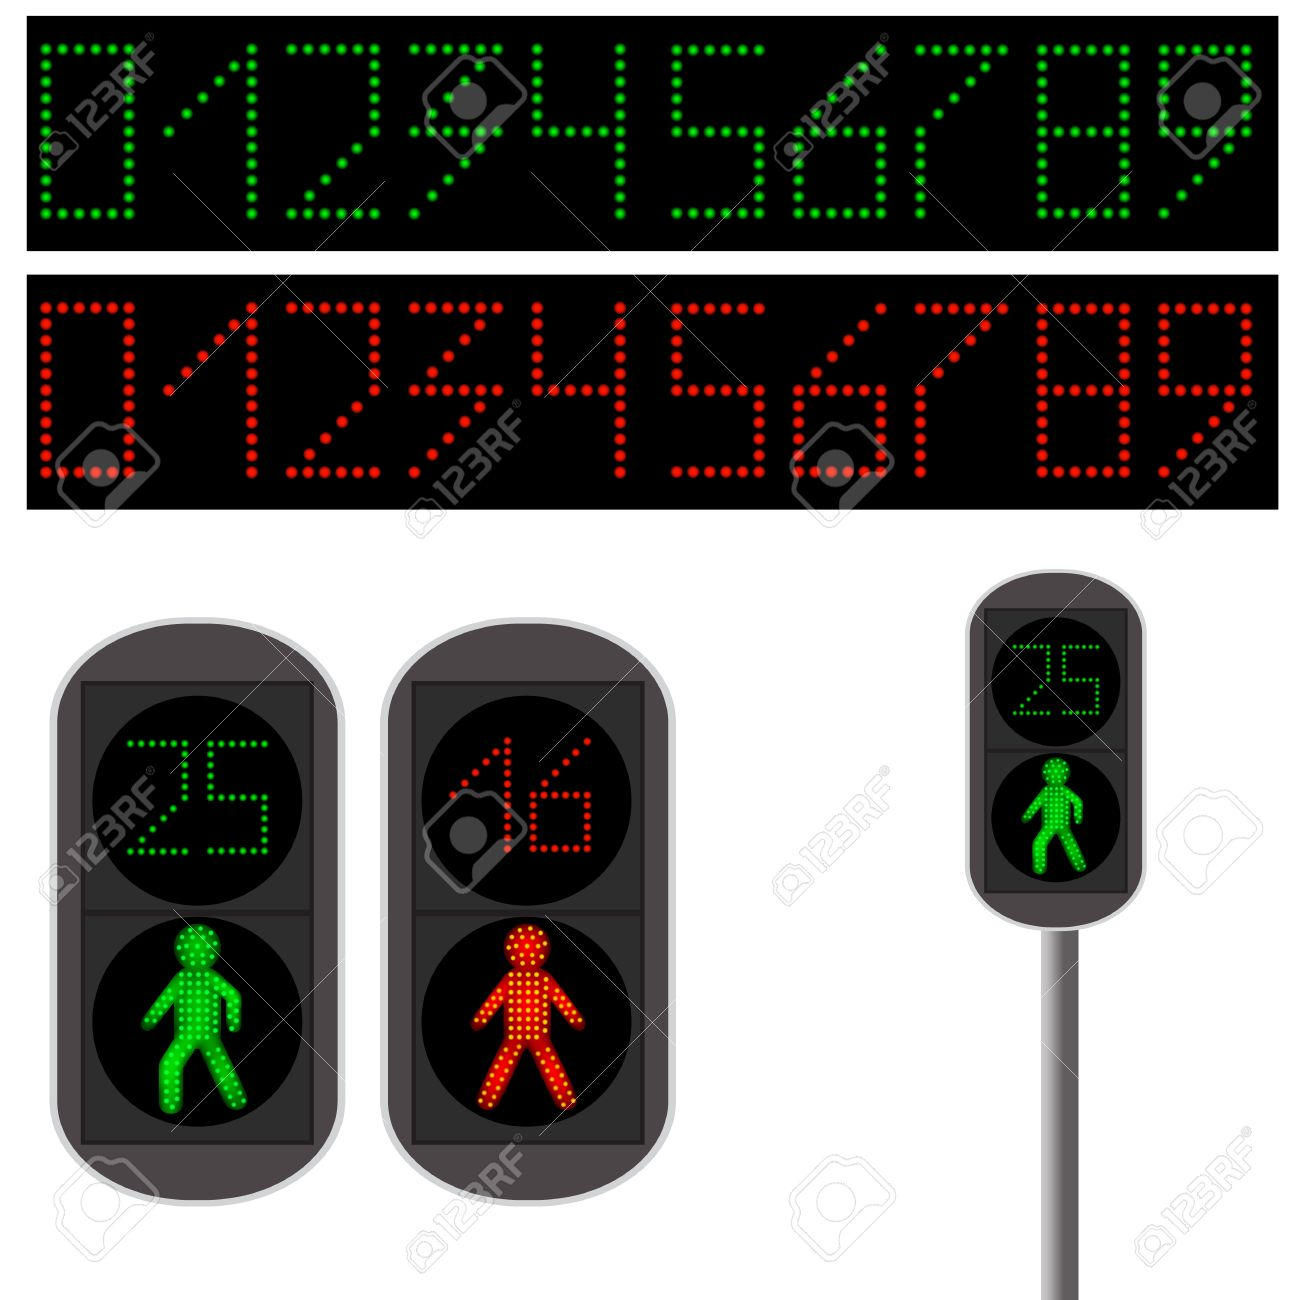 Pedestrian Traffic Light. Led Backlight. Red And Green Led Digits ... for pedestrian traffic light clipart  67qdu